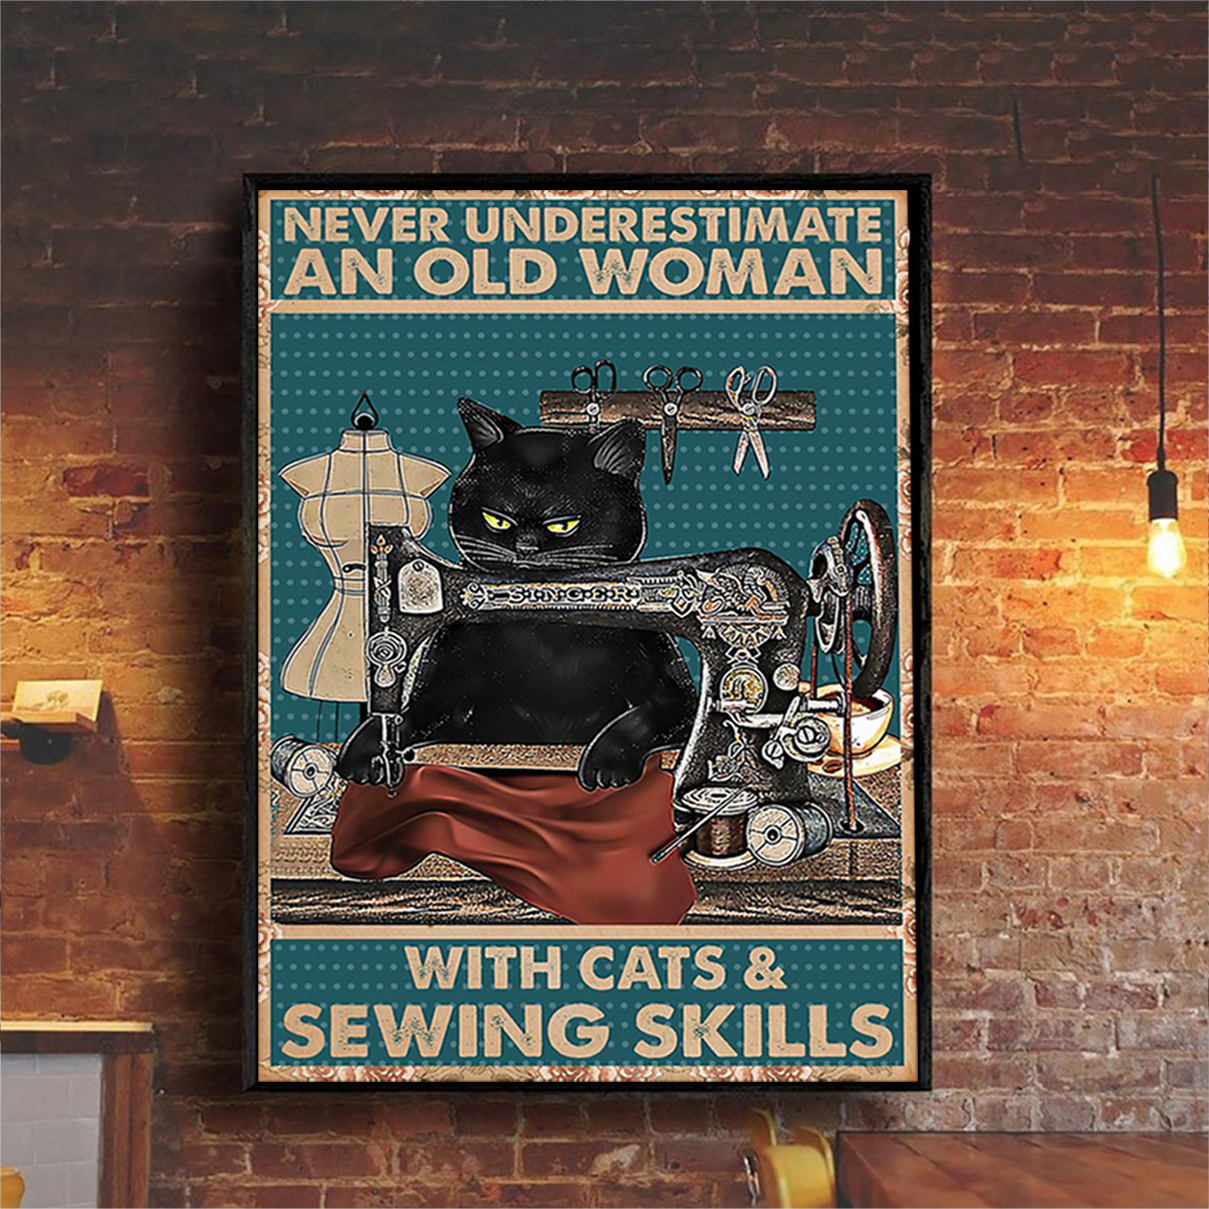 Never underestimate an old woman with cats and sewing skills poster A3